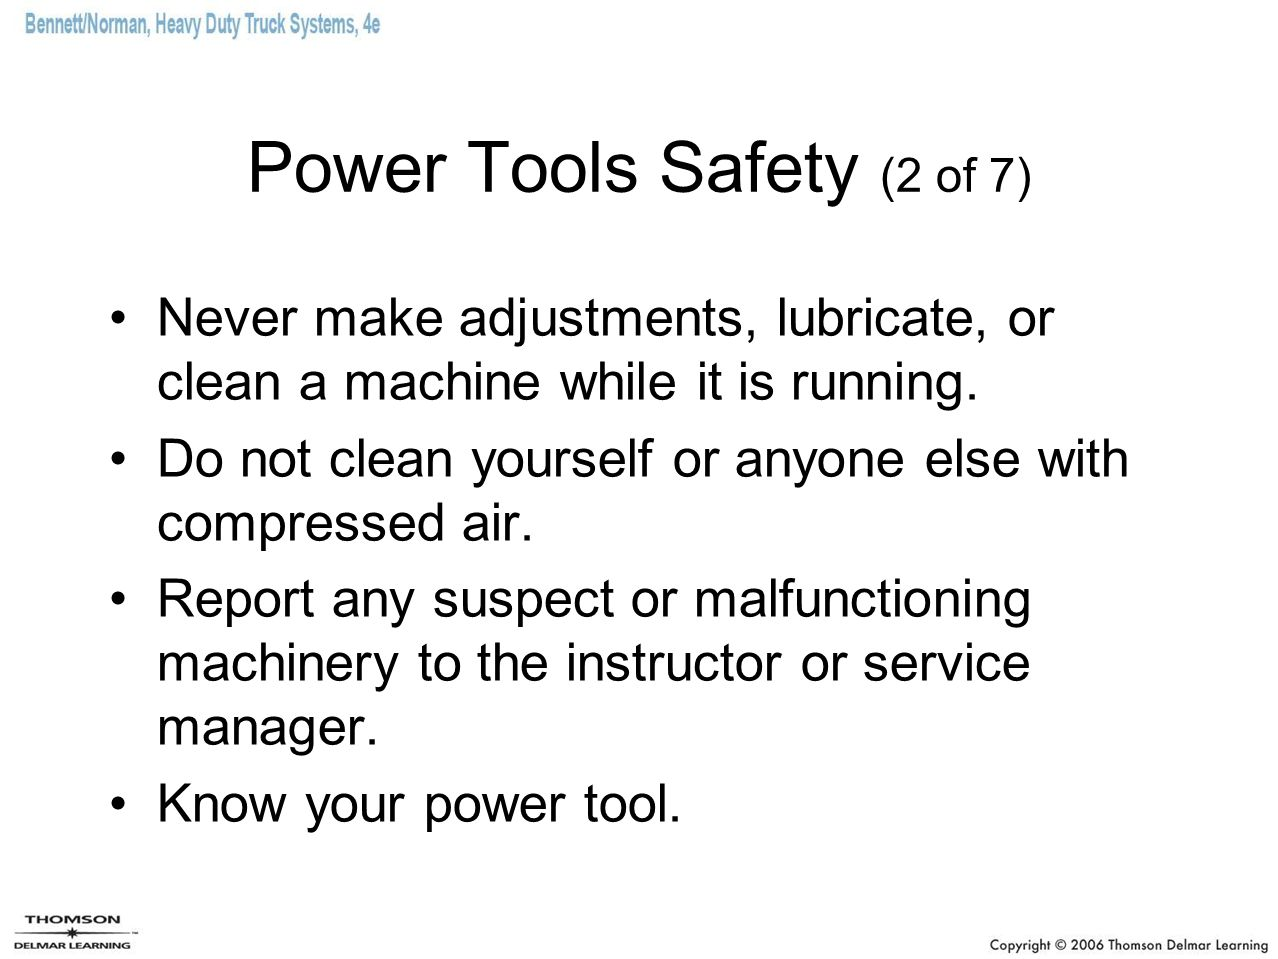 Power Tools Safety (2 of 7)